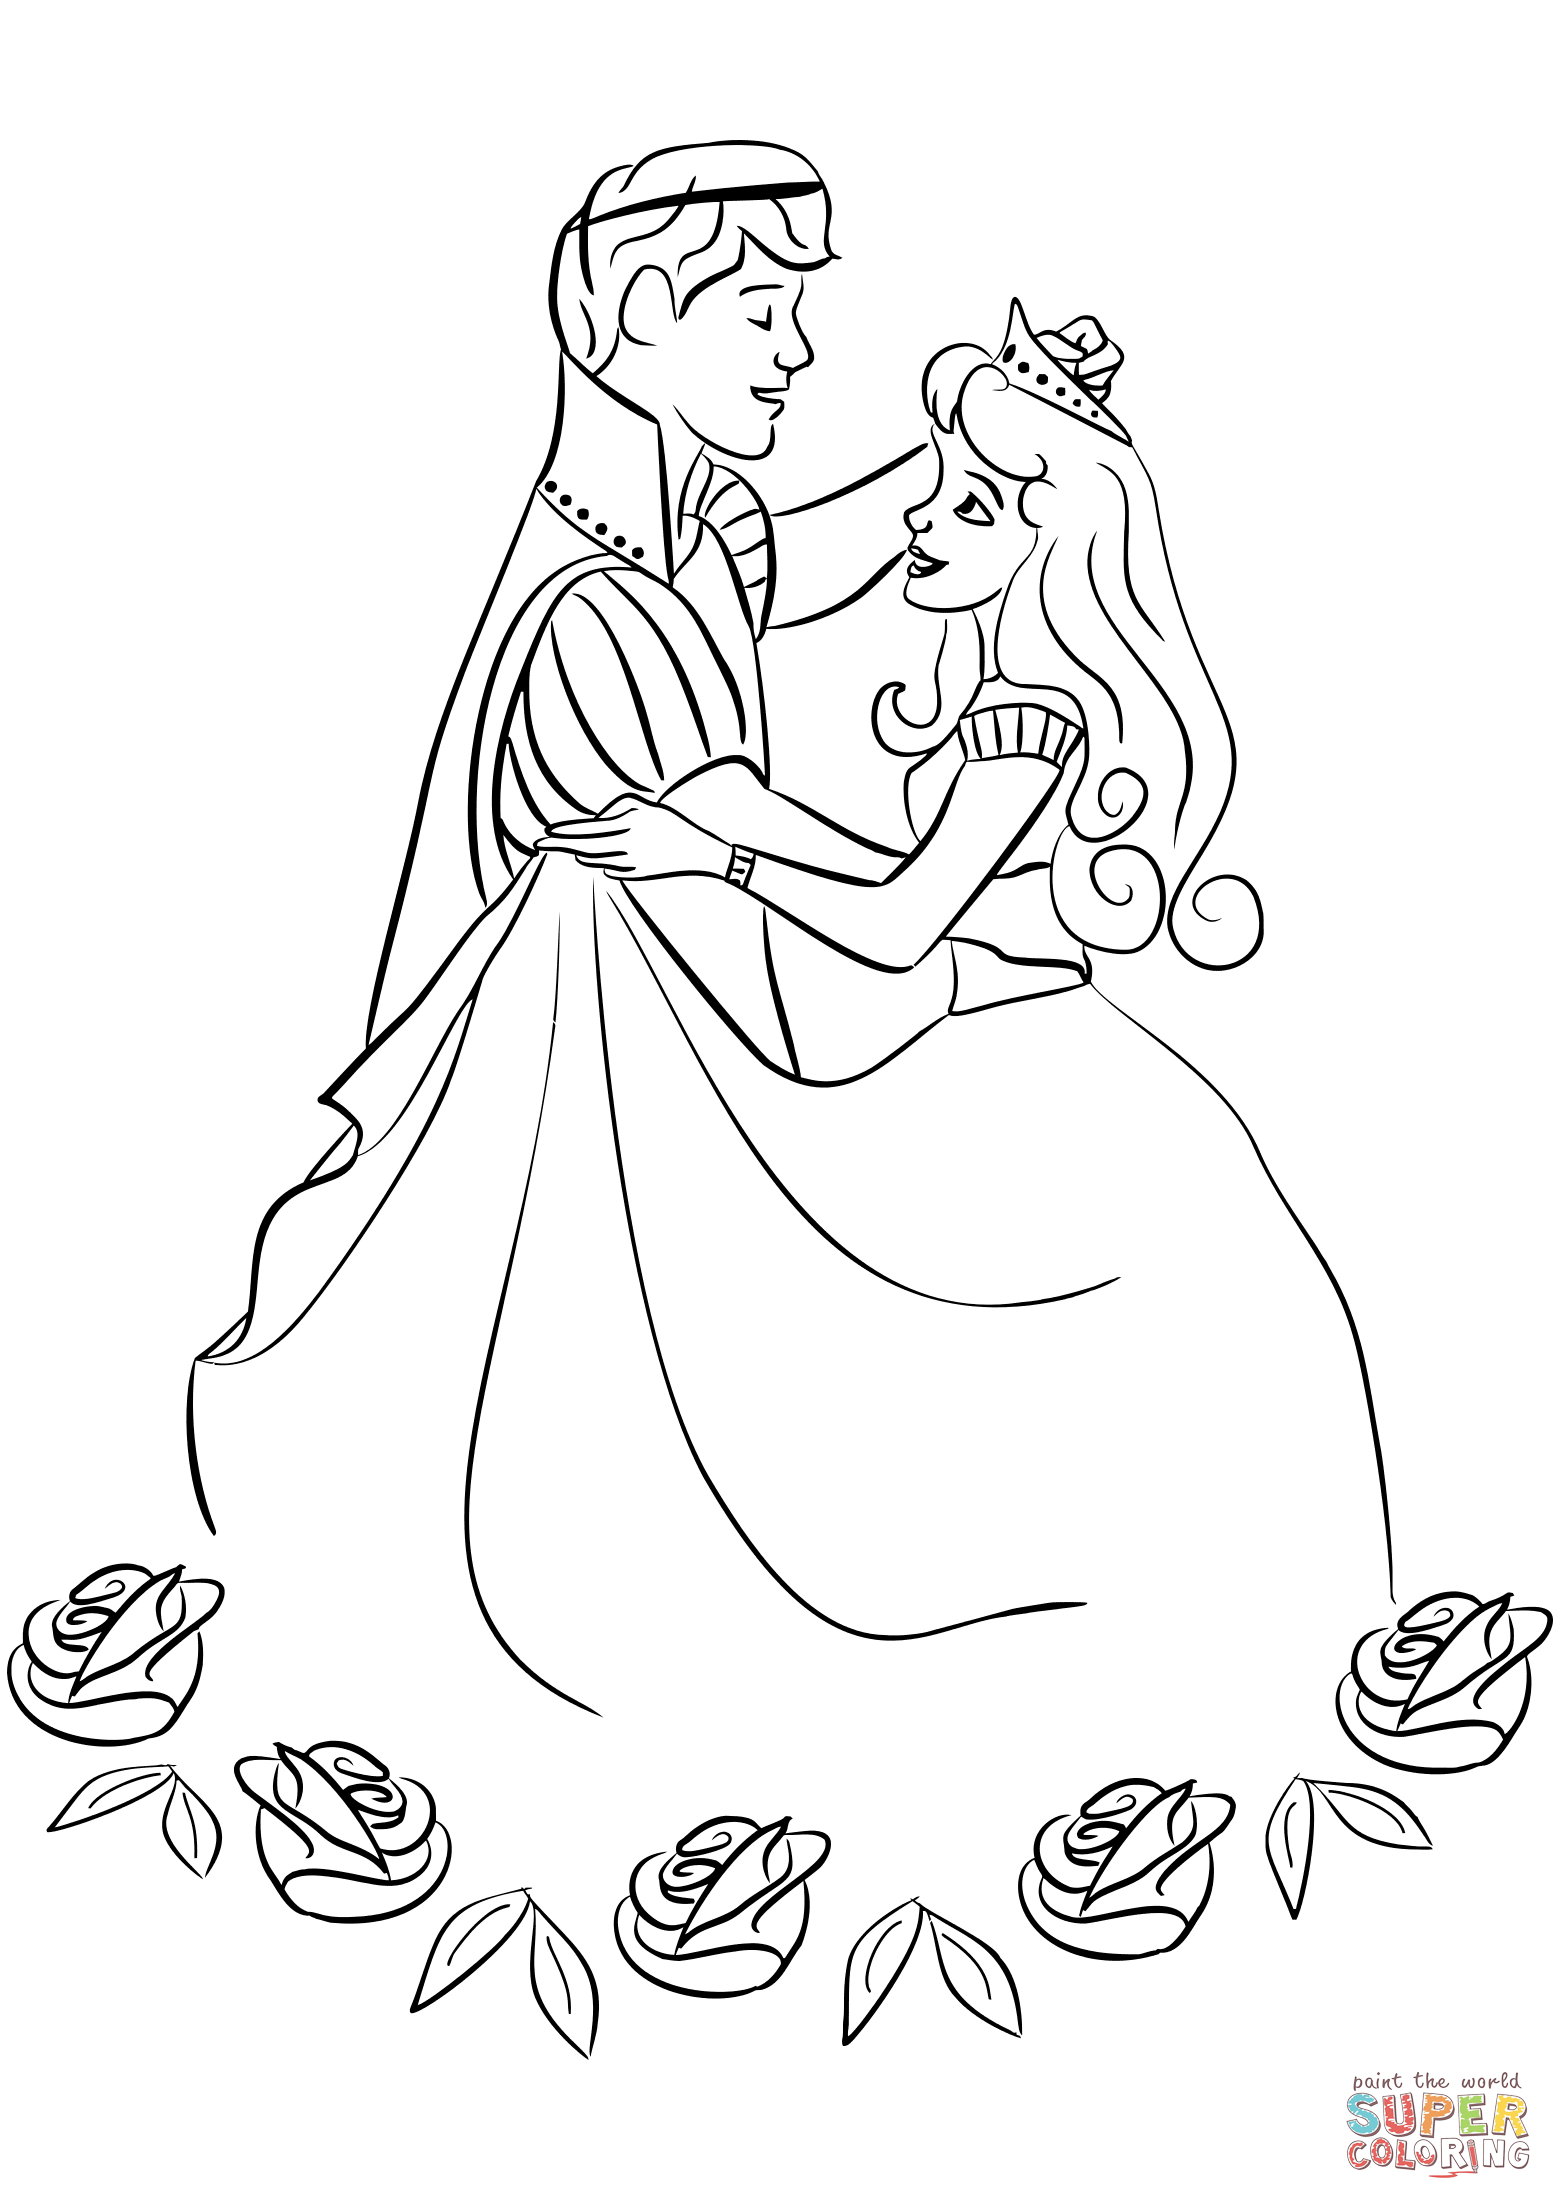 Prince And Princess Dancing Coloring Page